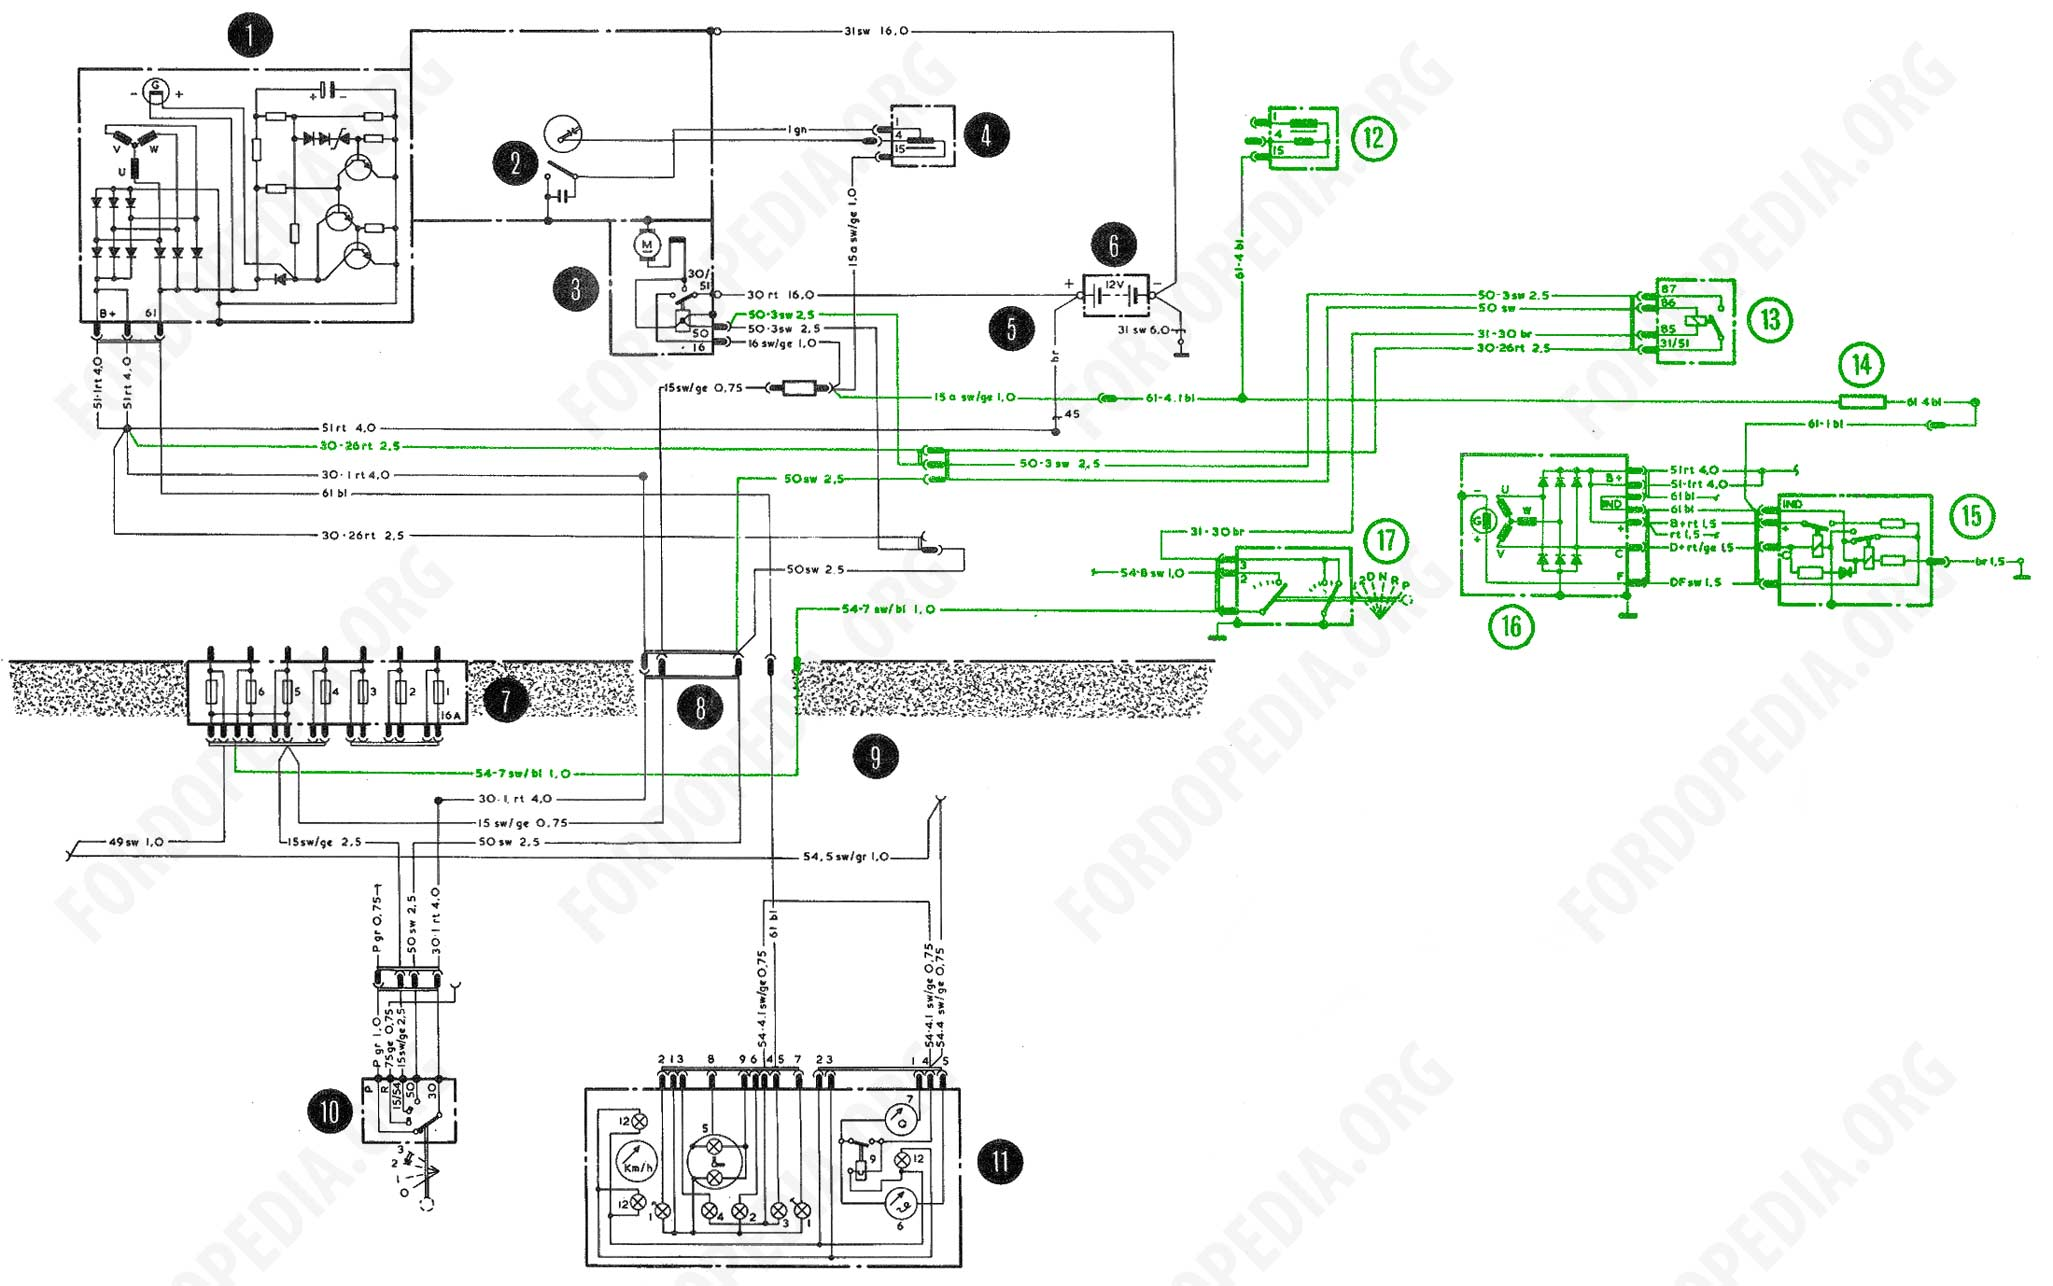 fordopedia org Starter Solenoid Wiring Diagram download full size image (2056x1283, 220 kb) wiring diagrams taunus tc2 cortina mk4 base version, l version, gl